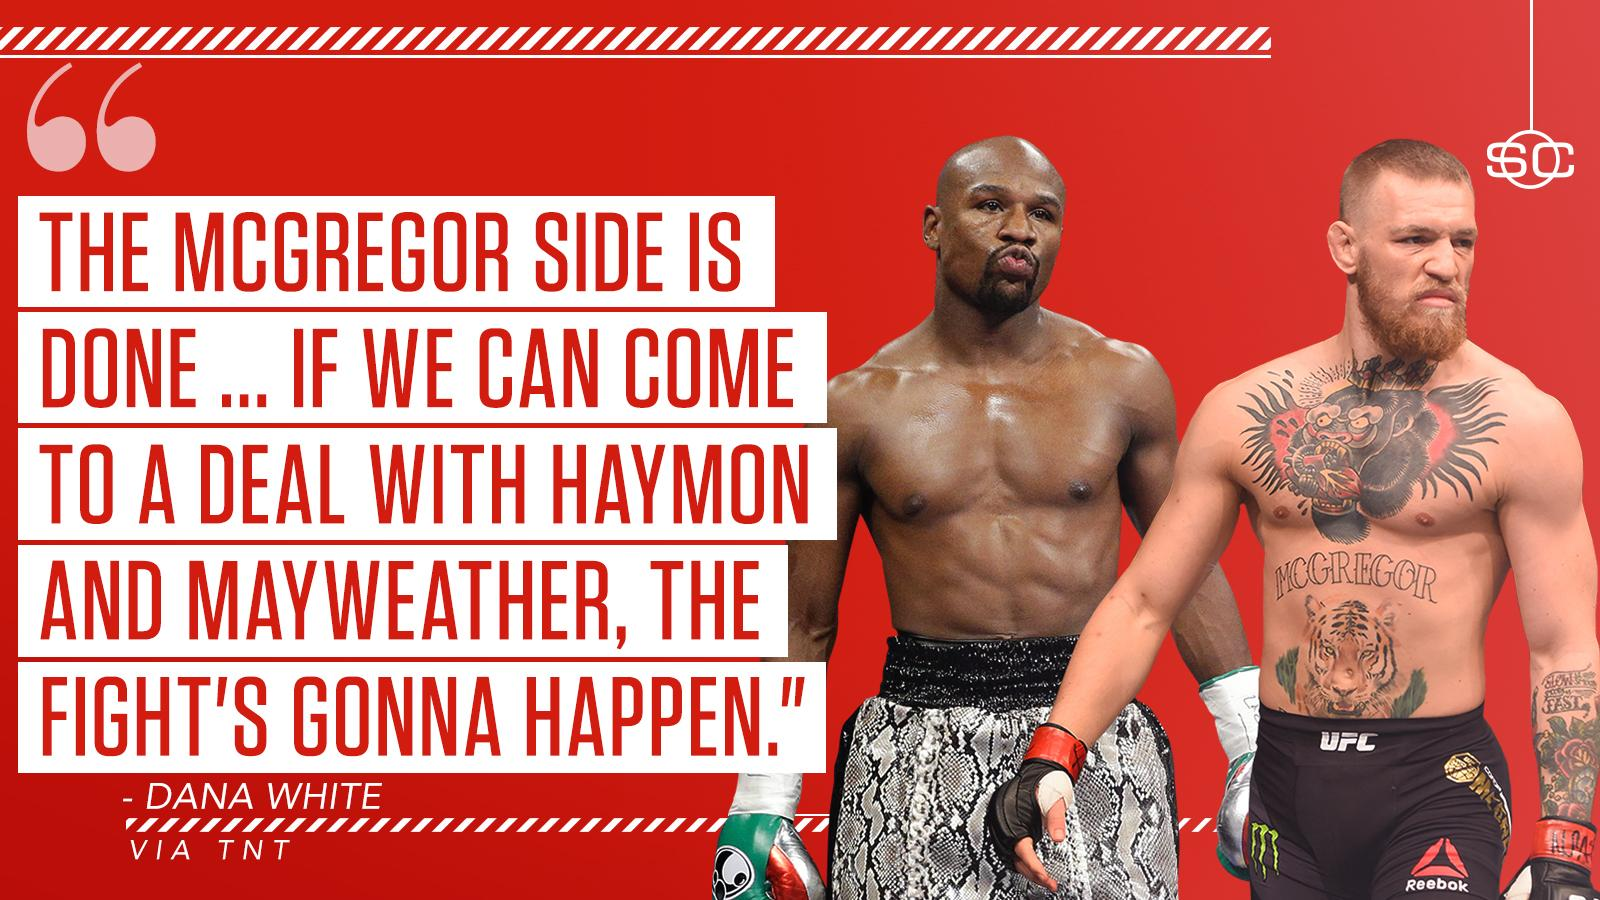 ICYMI: The Mayweather-McGregor superfight is one step closer to happening. https://t.co/zgAQU5SYg3 https://t.co/Fghr7l7iEt